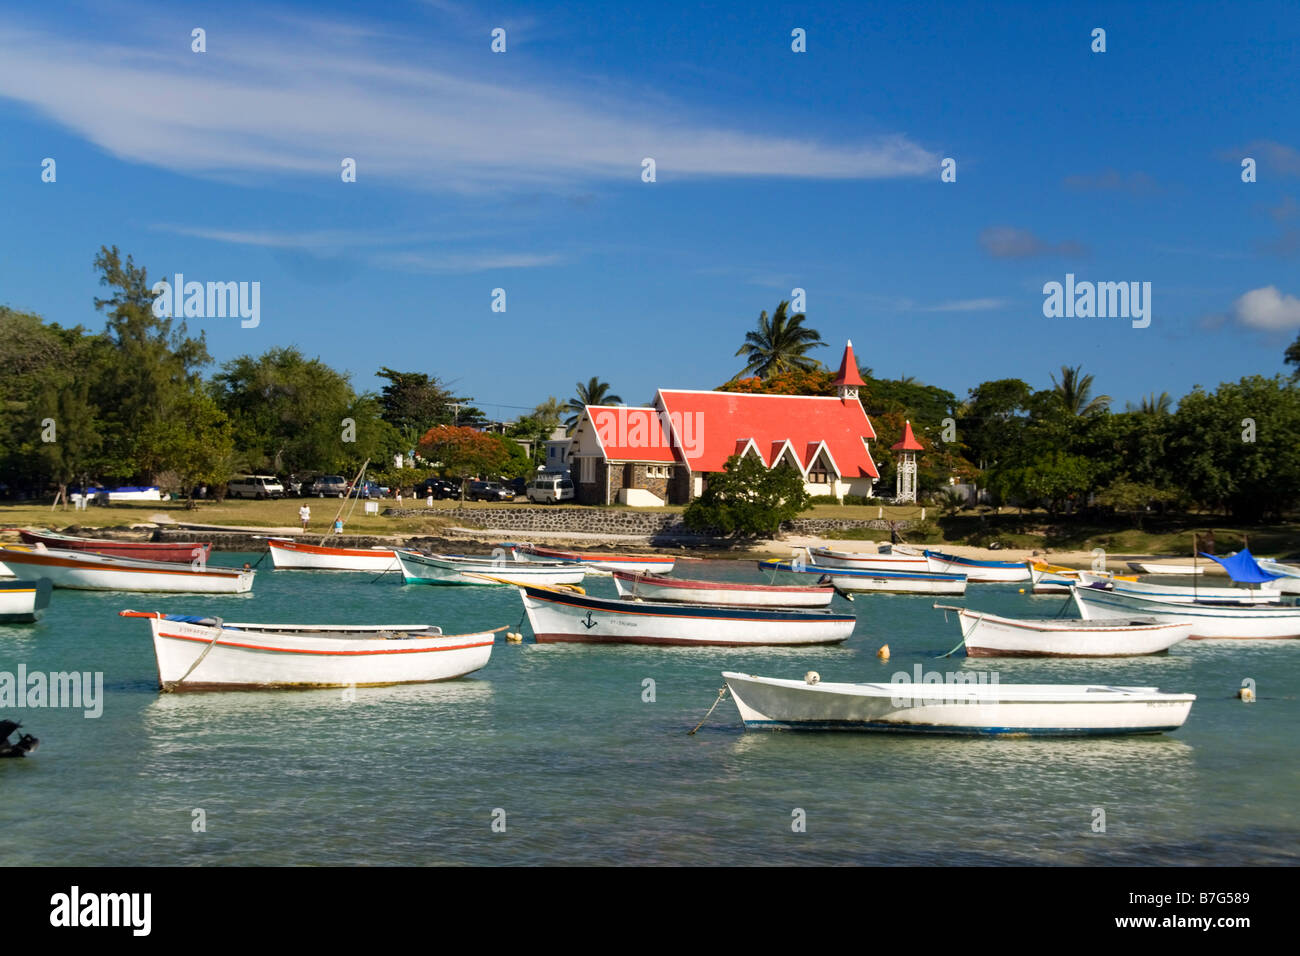 Eglise de Cap Malheureux boats Mauritius Africa Stock Photo